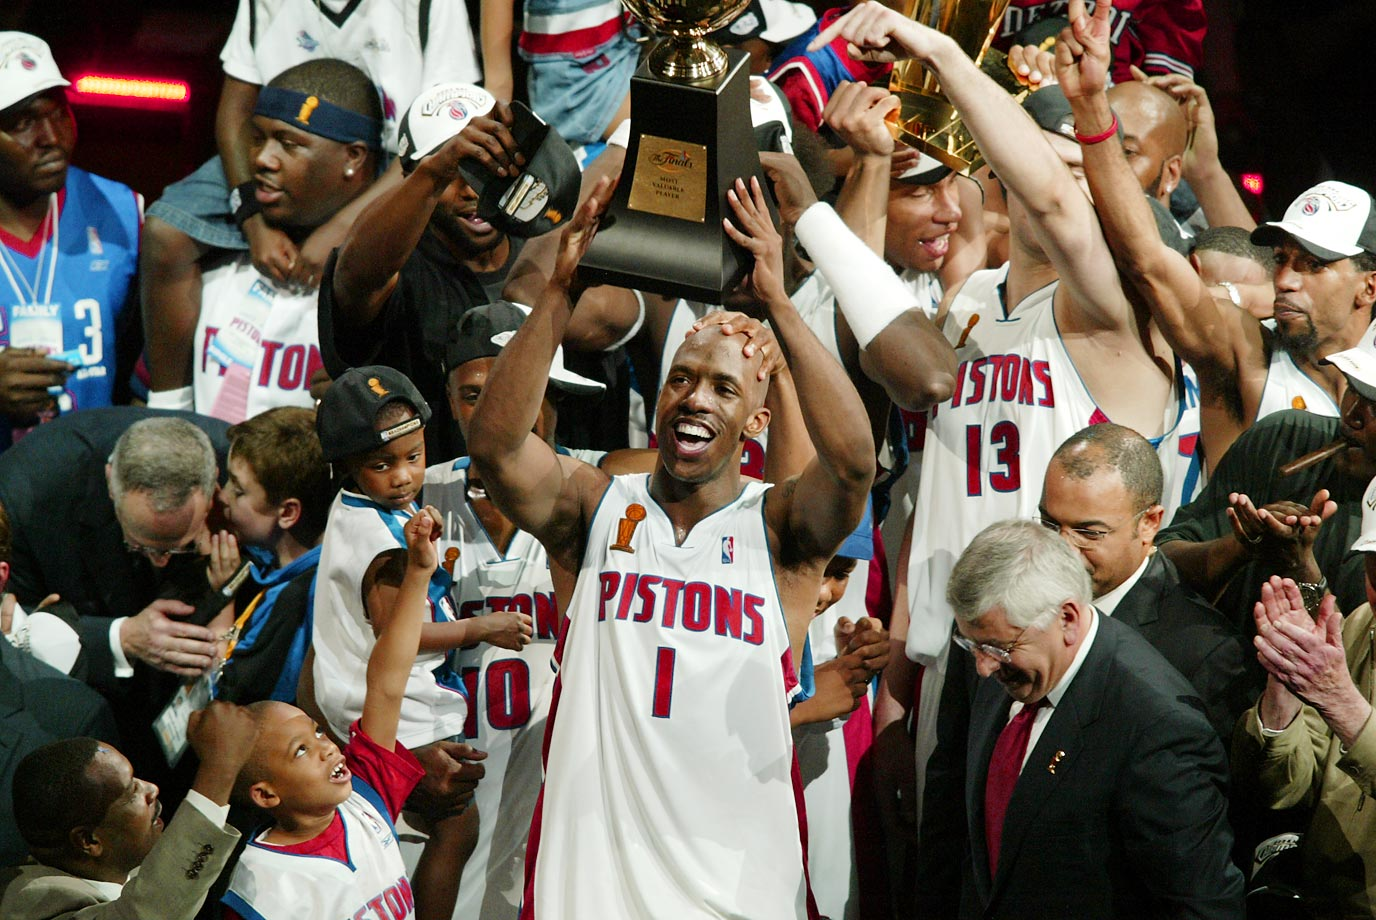 Chauncey Billups hoists the trophy as the Pistons celebrate their championship. With a penchant for making shots in critical moments, Billups was named Finals MVP.